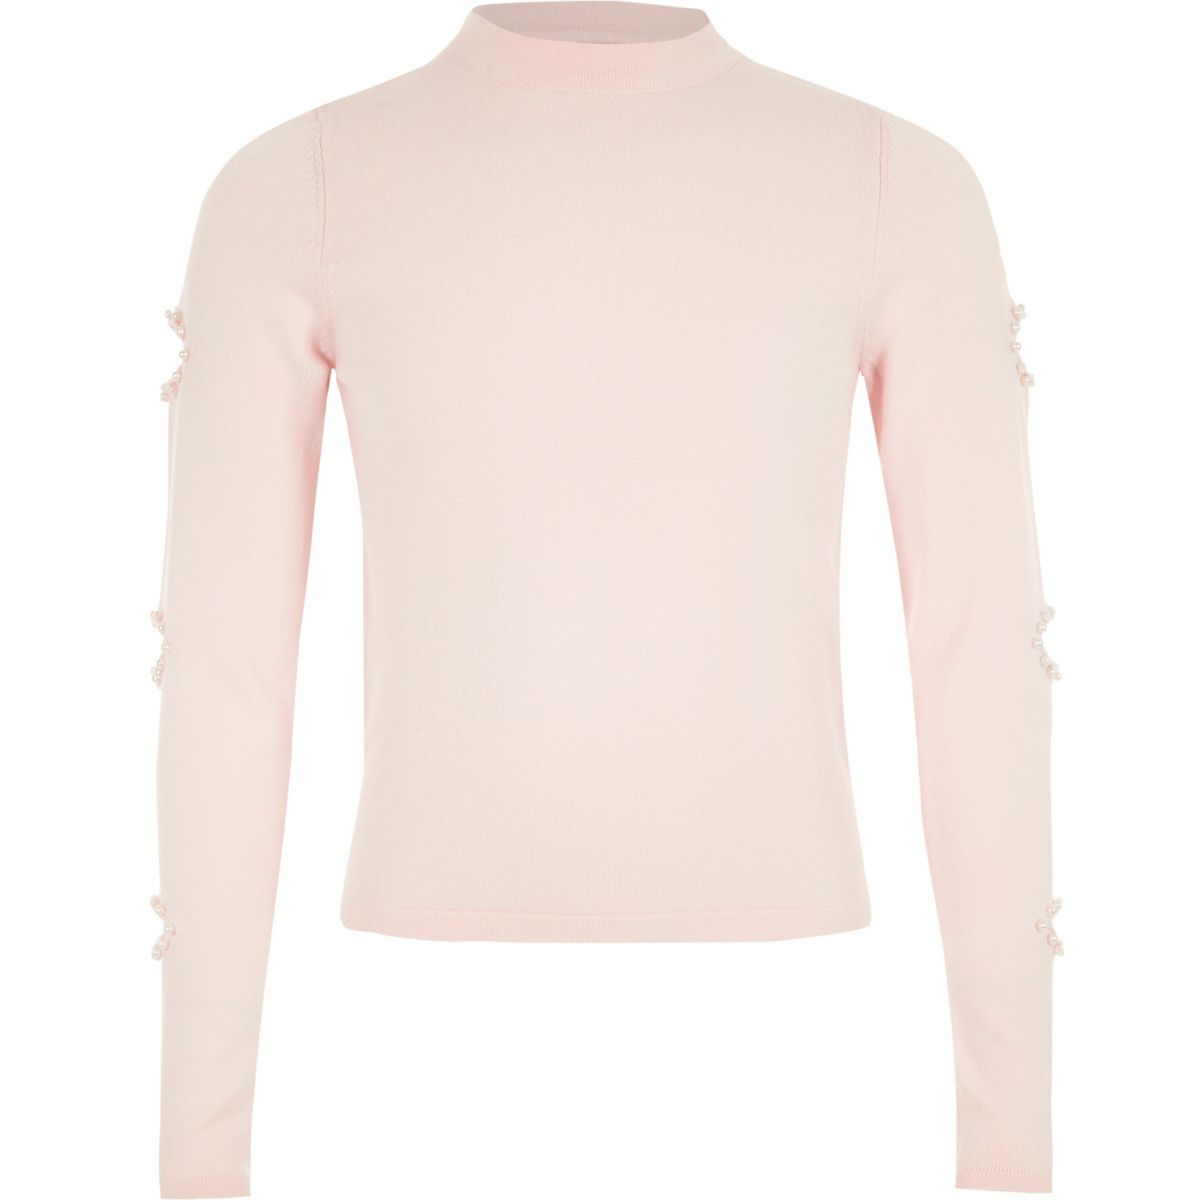 Girls light pink pearl cut out sleeve sweater